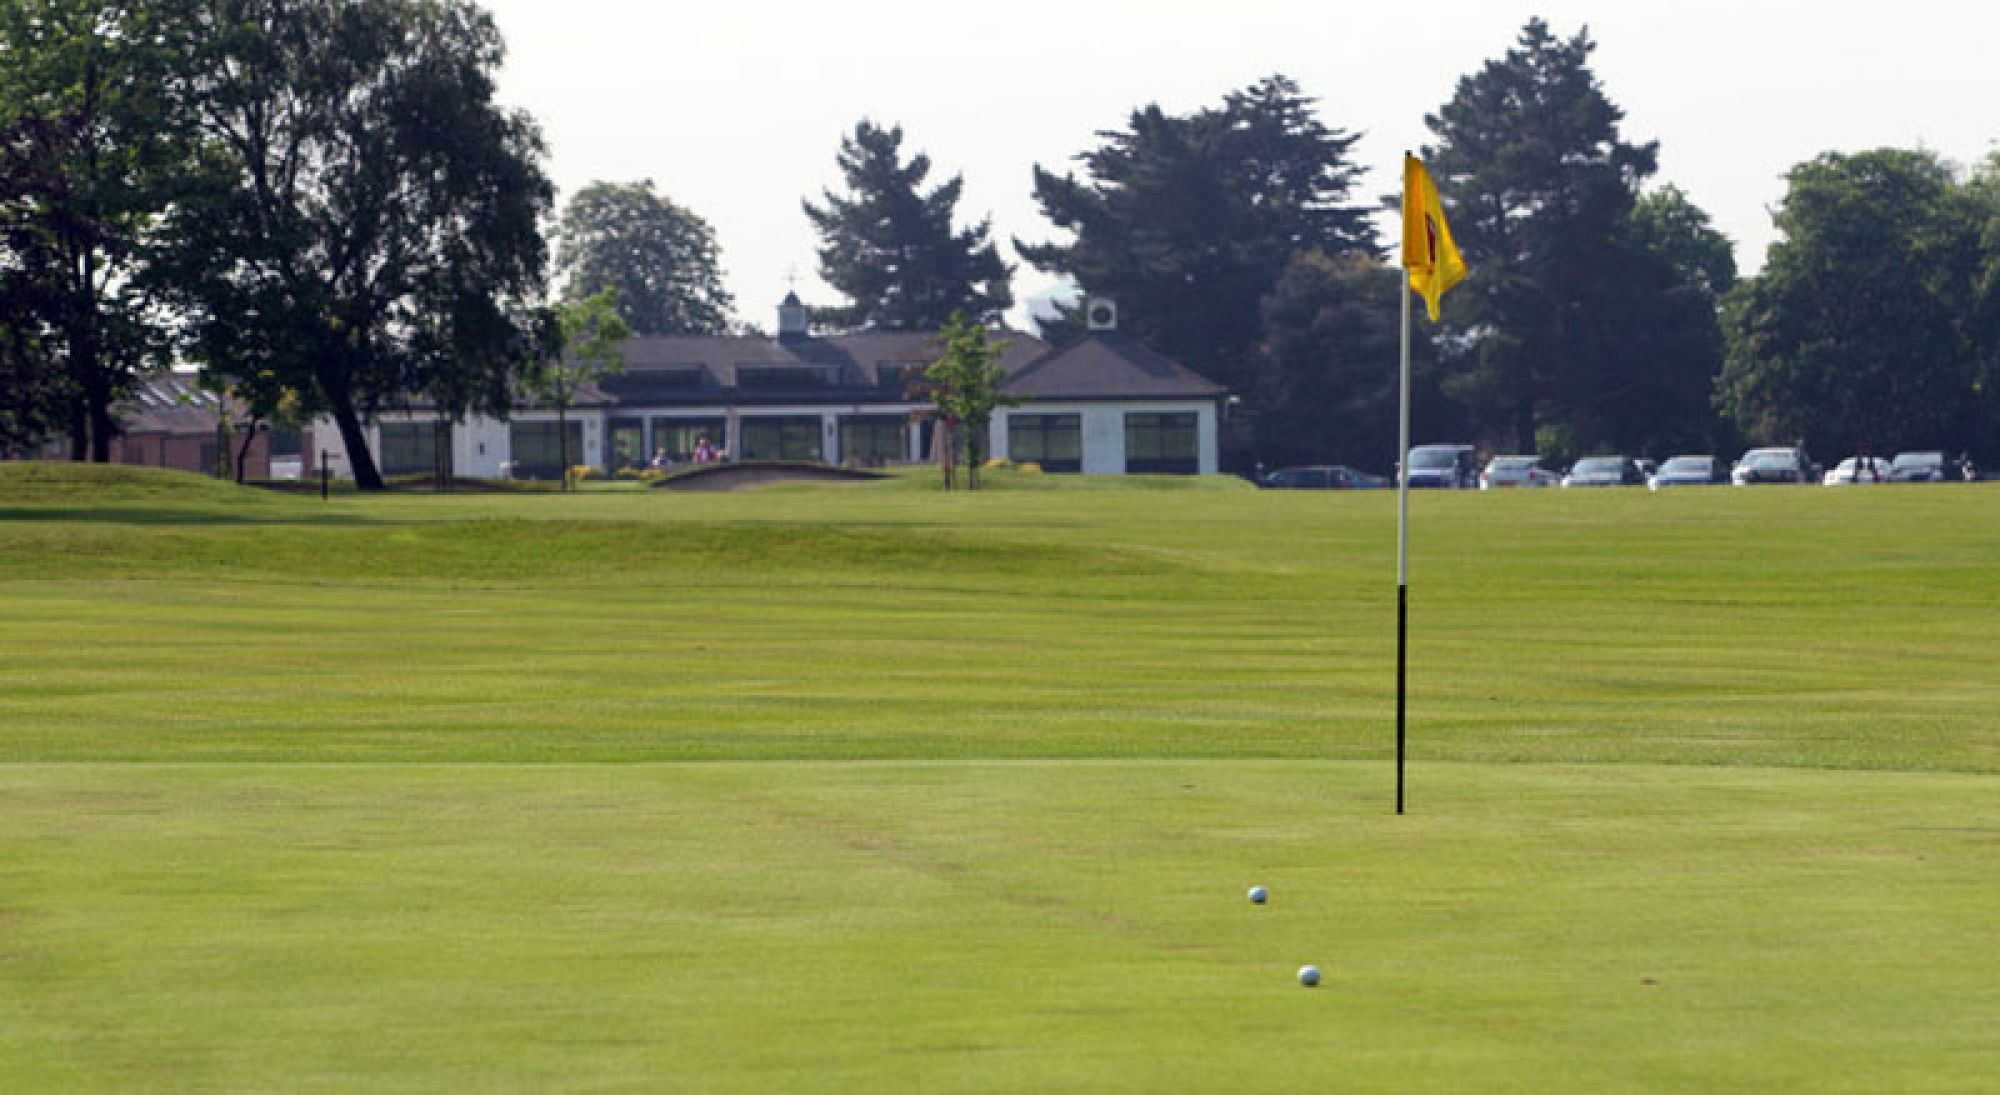 The Colchester Golf Club's impressive golf course situated in striking Essex.